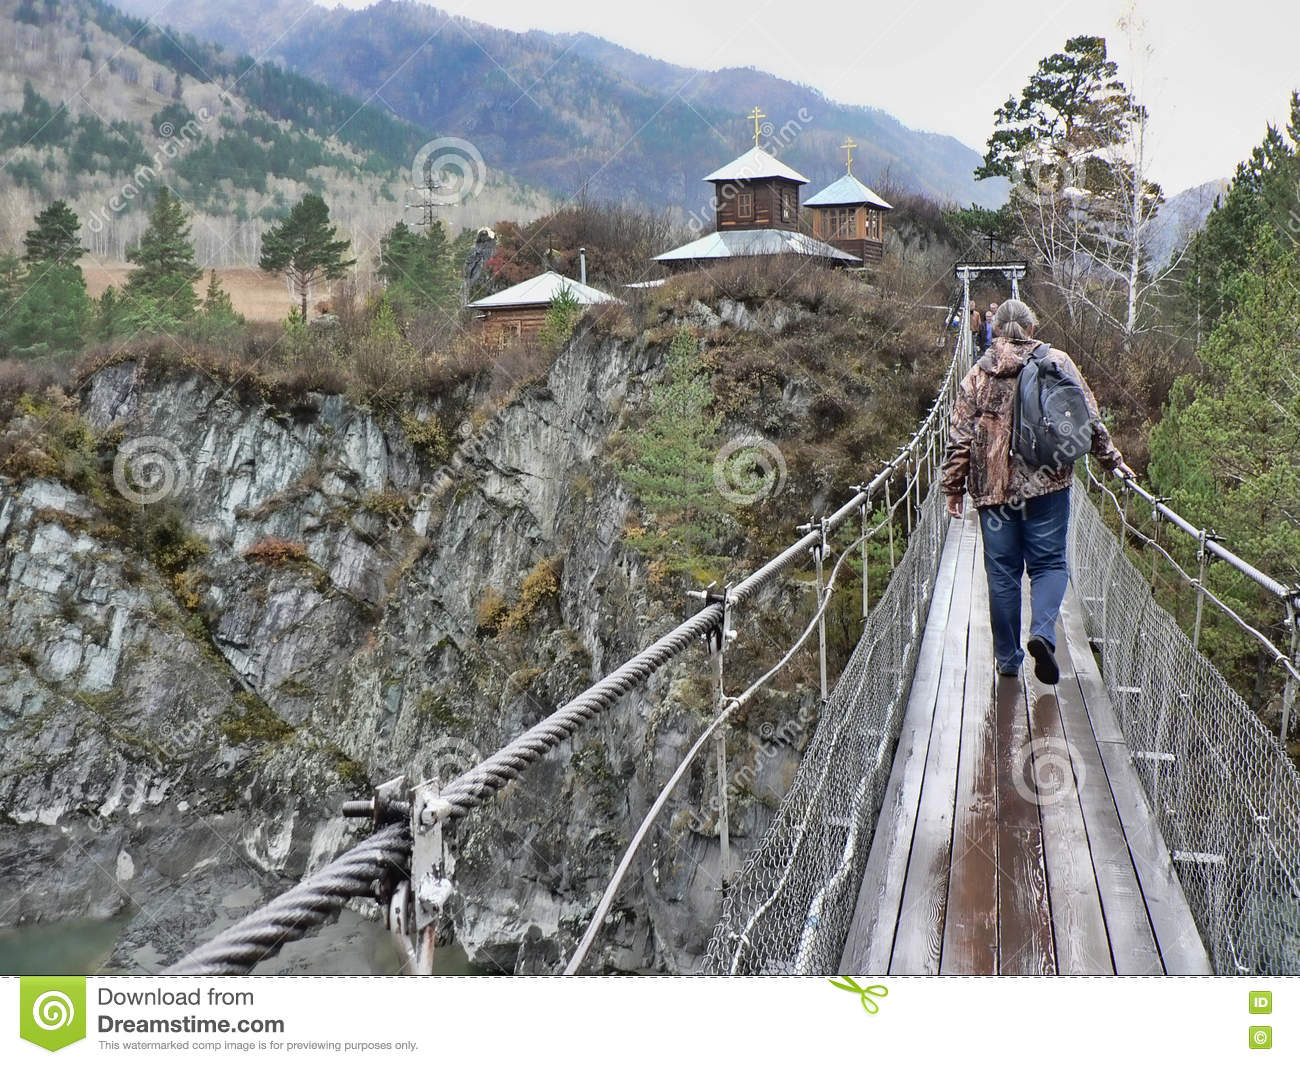 In Altai, Sibmost will build a bridge and reconstruct the Chui road 93